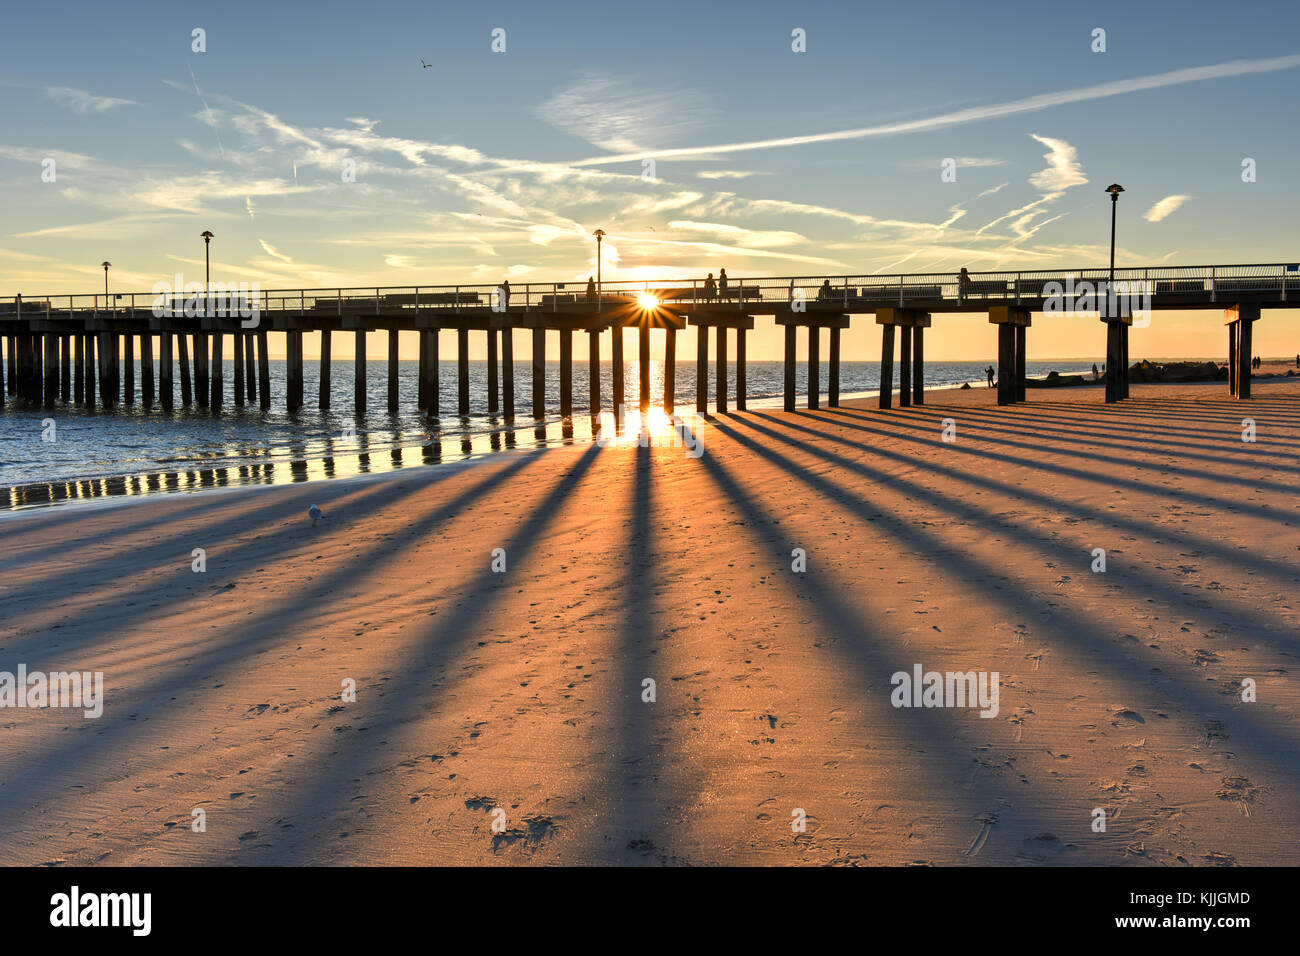 Coney Island Beach at sunset with a vivid, dramatic sky and long shadows. - Stock Image